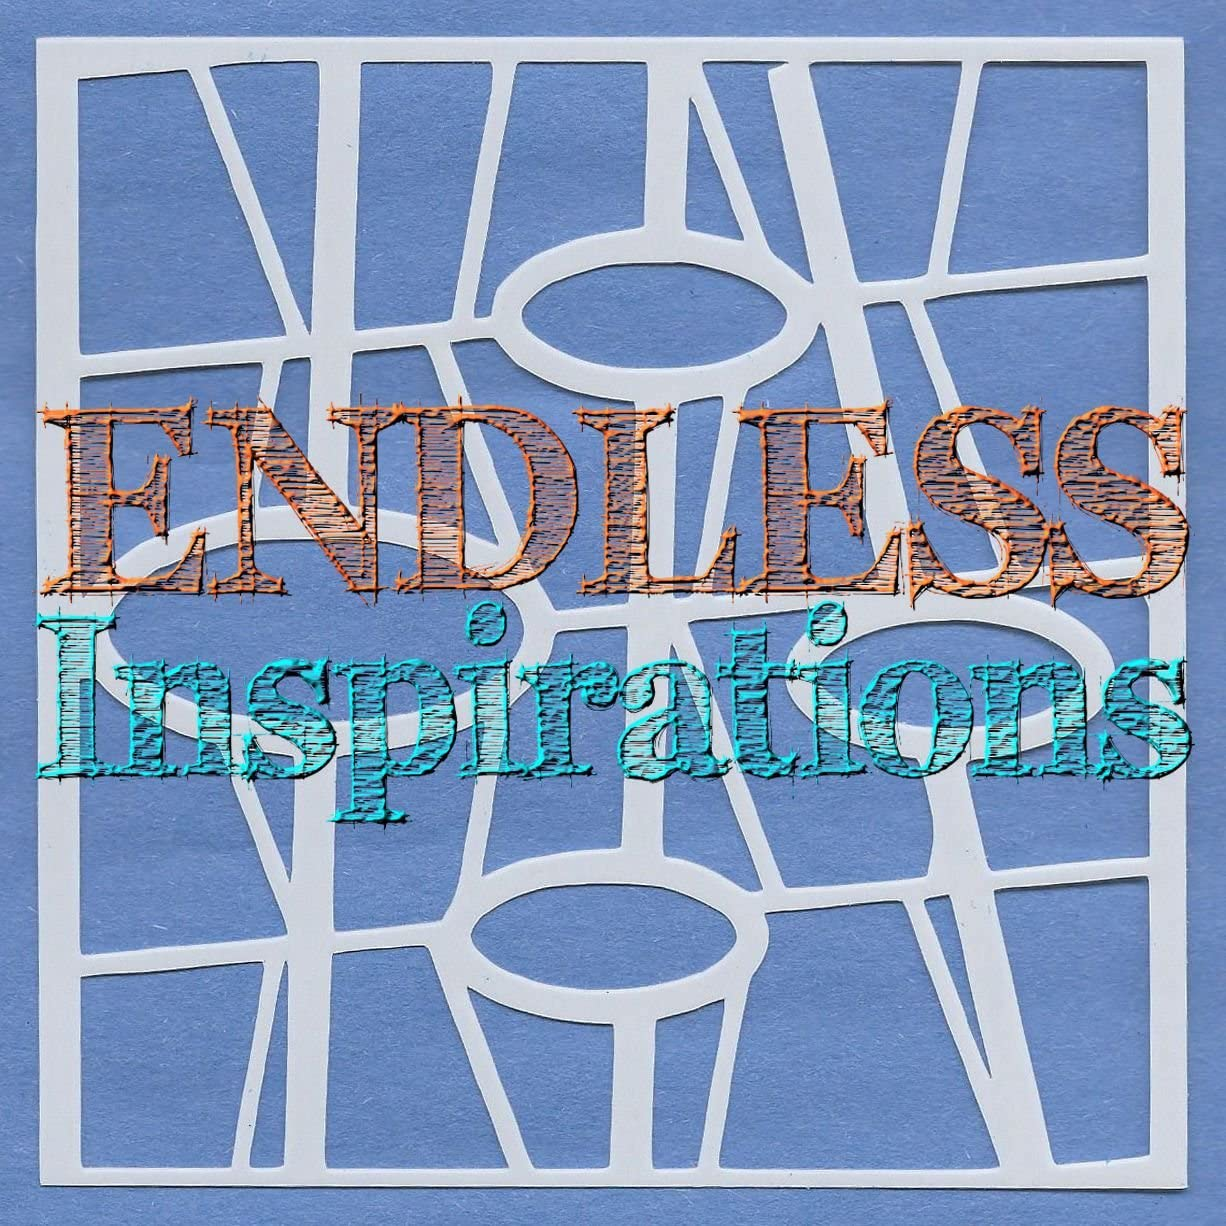 50s Abstract 6x6 Inch Endless Inspirations Original Stencil